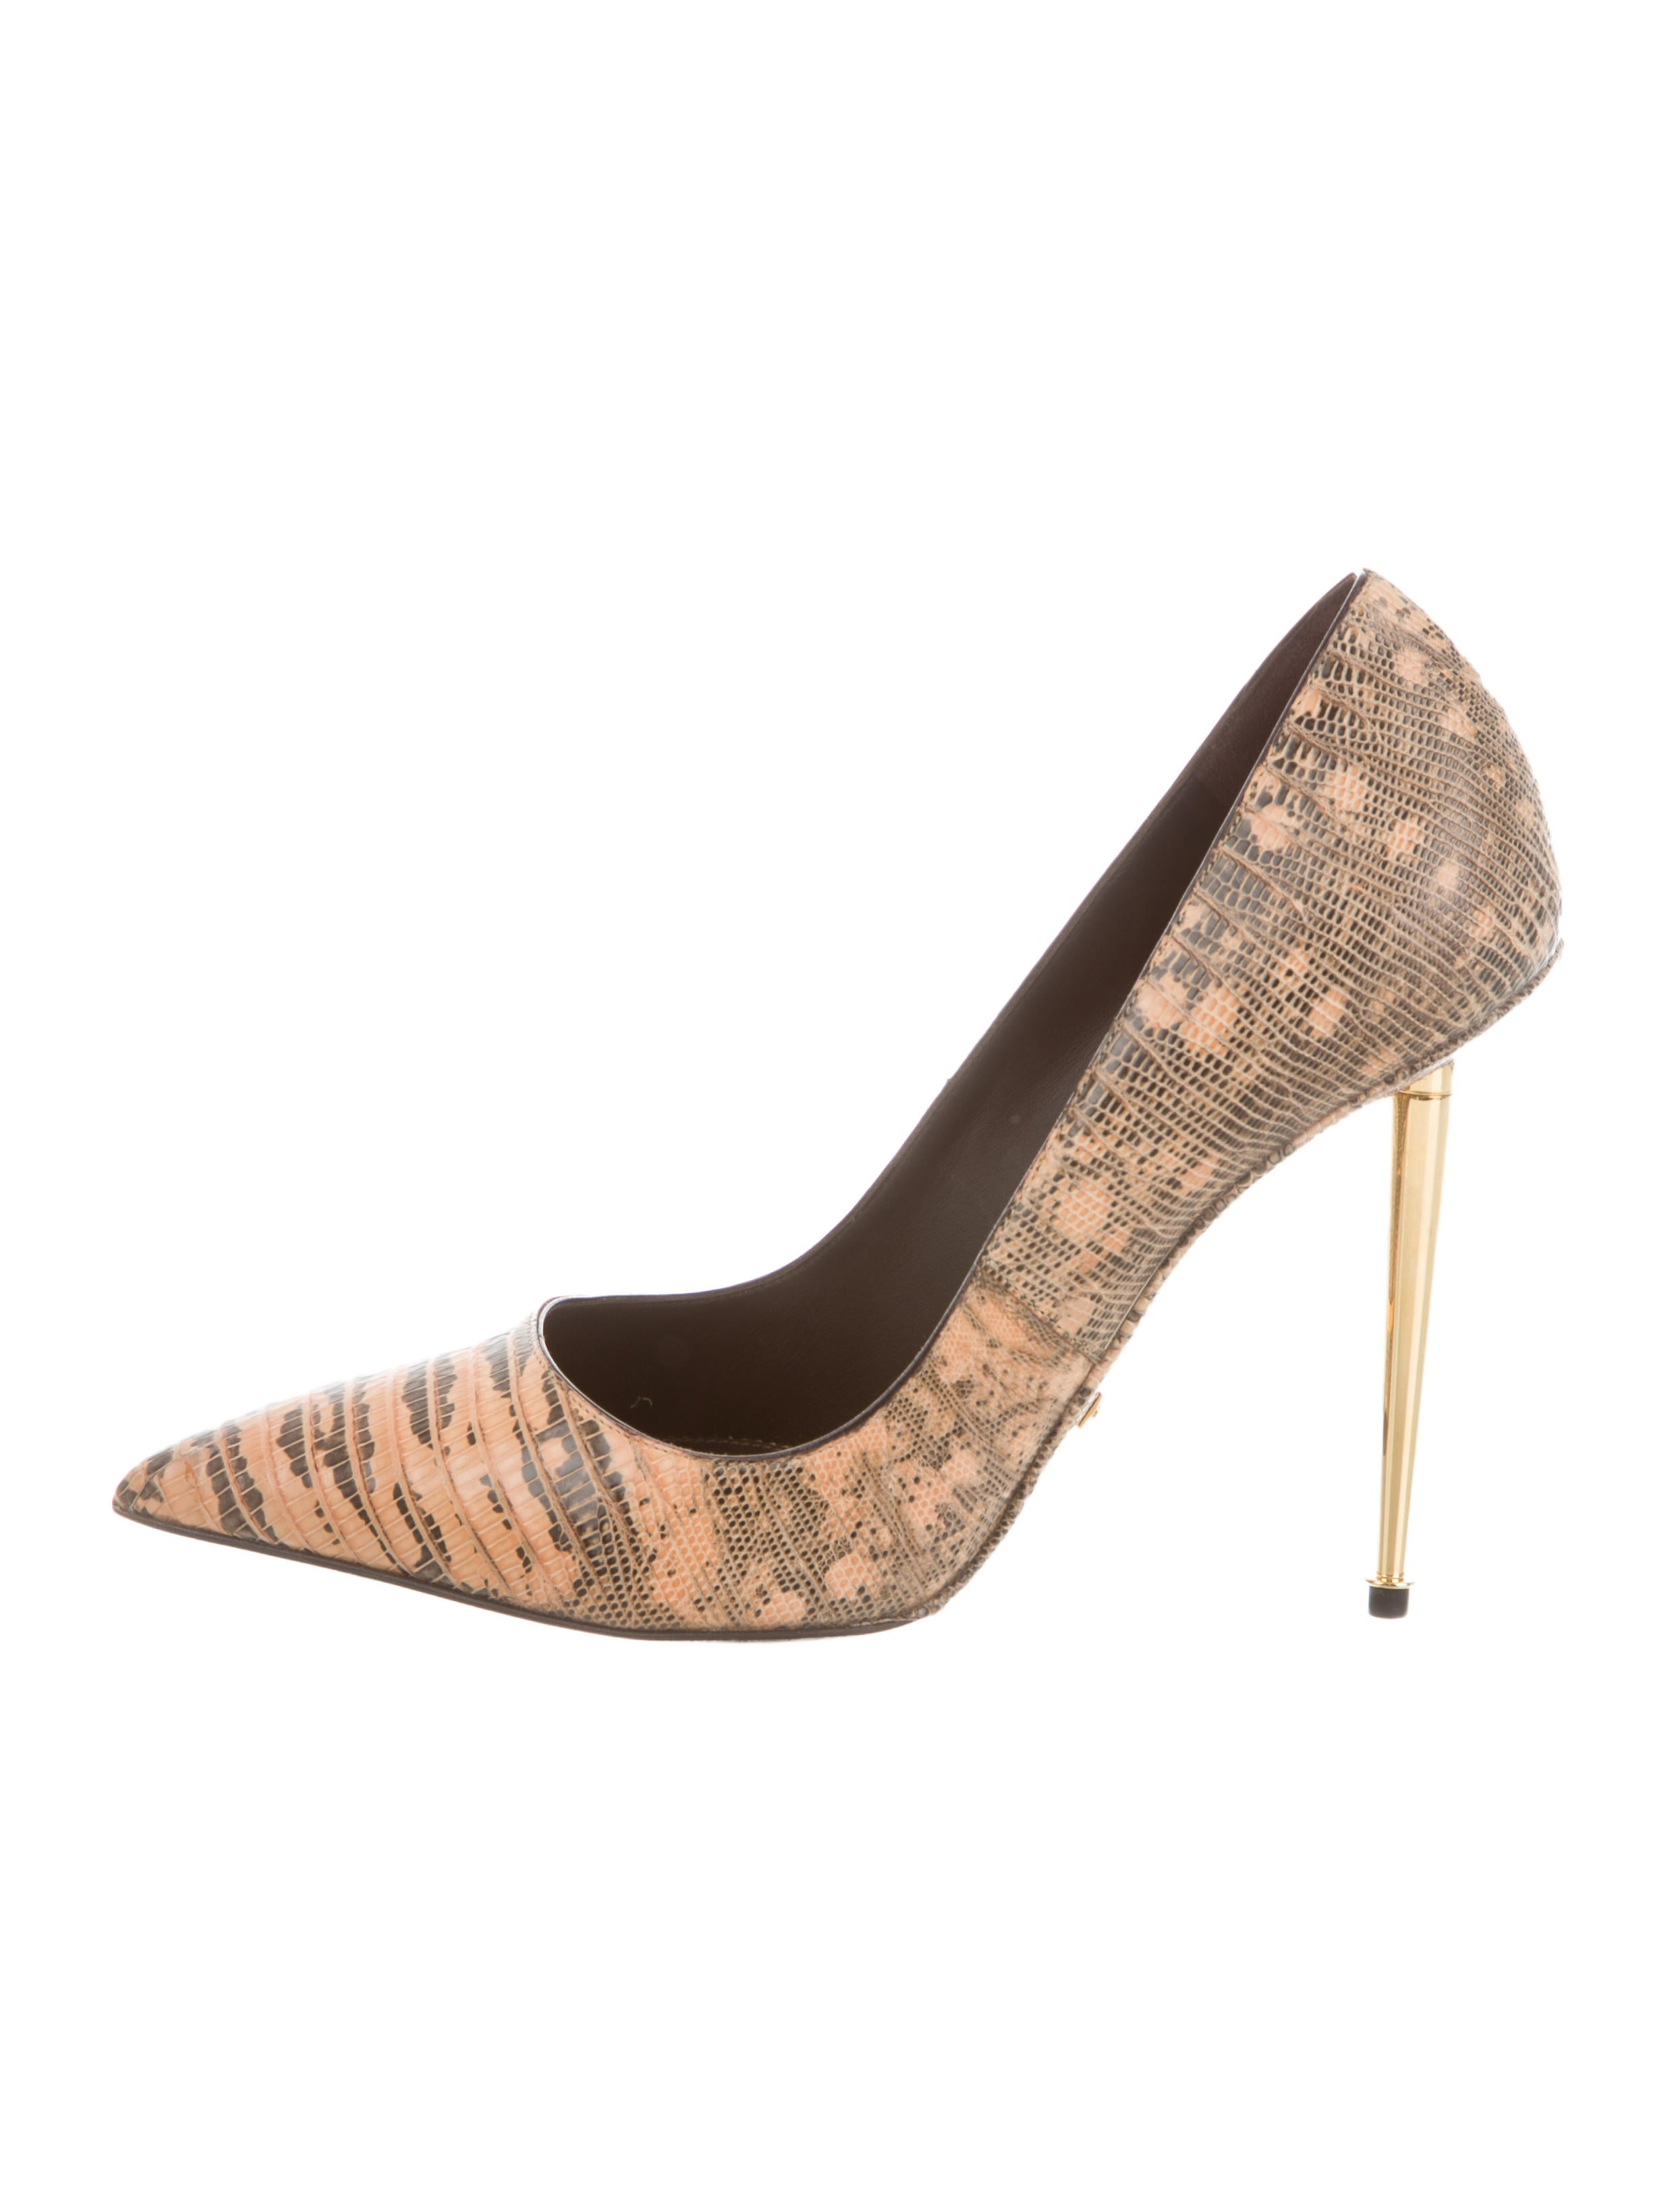 Tom Ford Lizard Pointed-Toe Pumps clearance perfect outlet release dates discount professional xNdo7